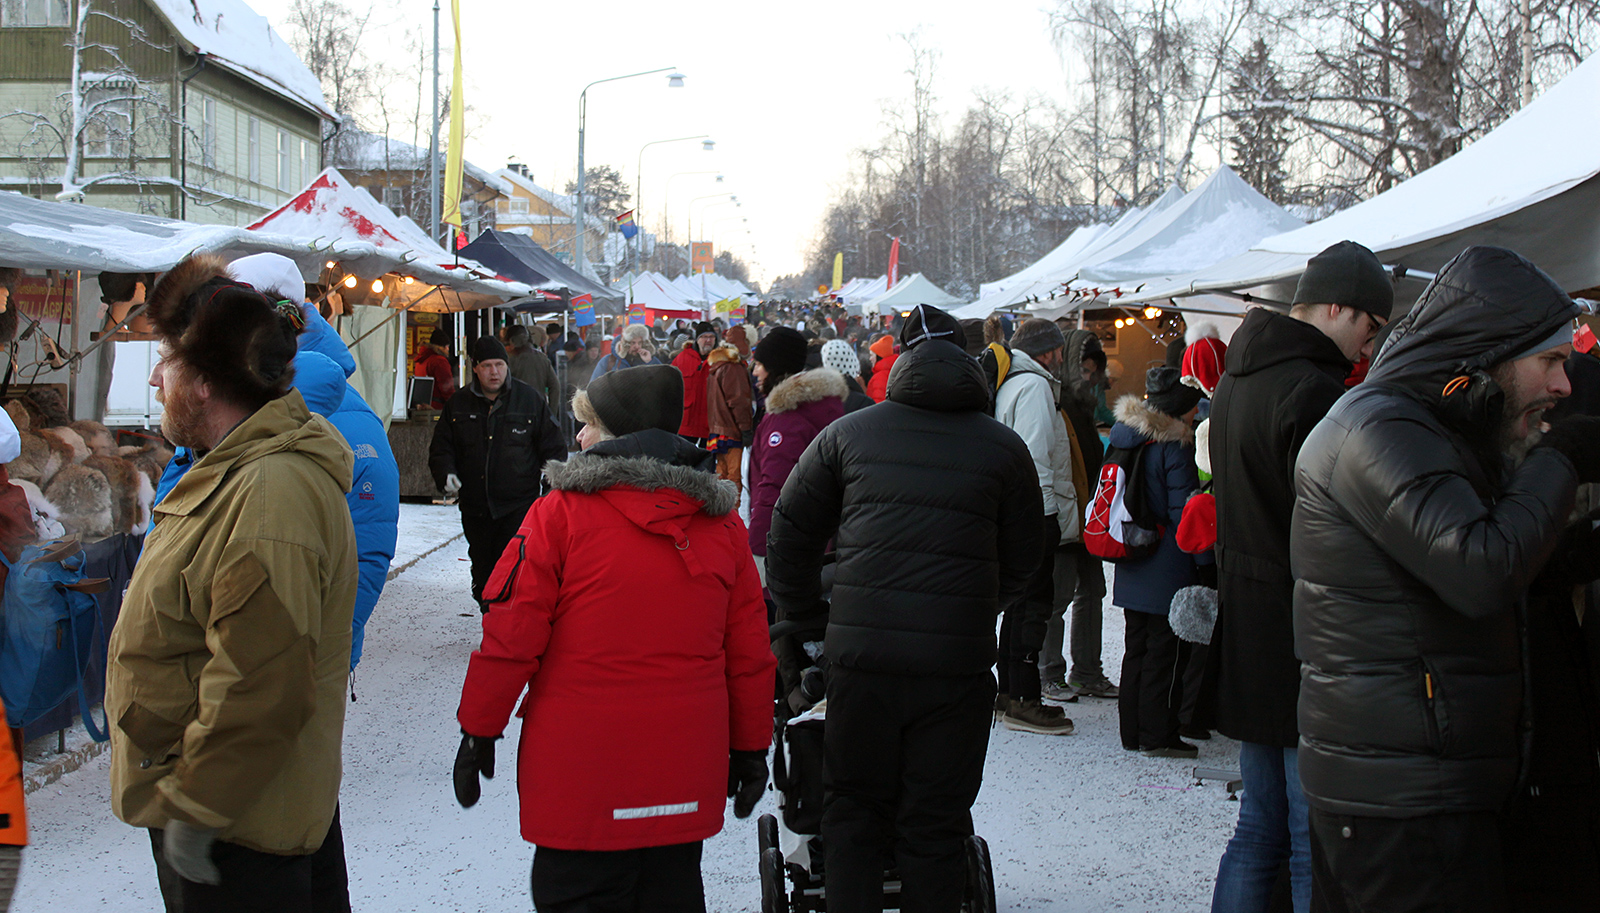 2016-02-05 - Storgatan (the main street) on the second day of the Jokkmokk winter market of 2016